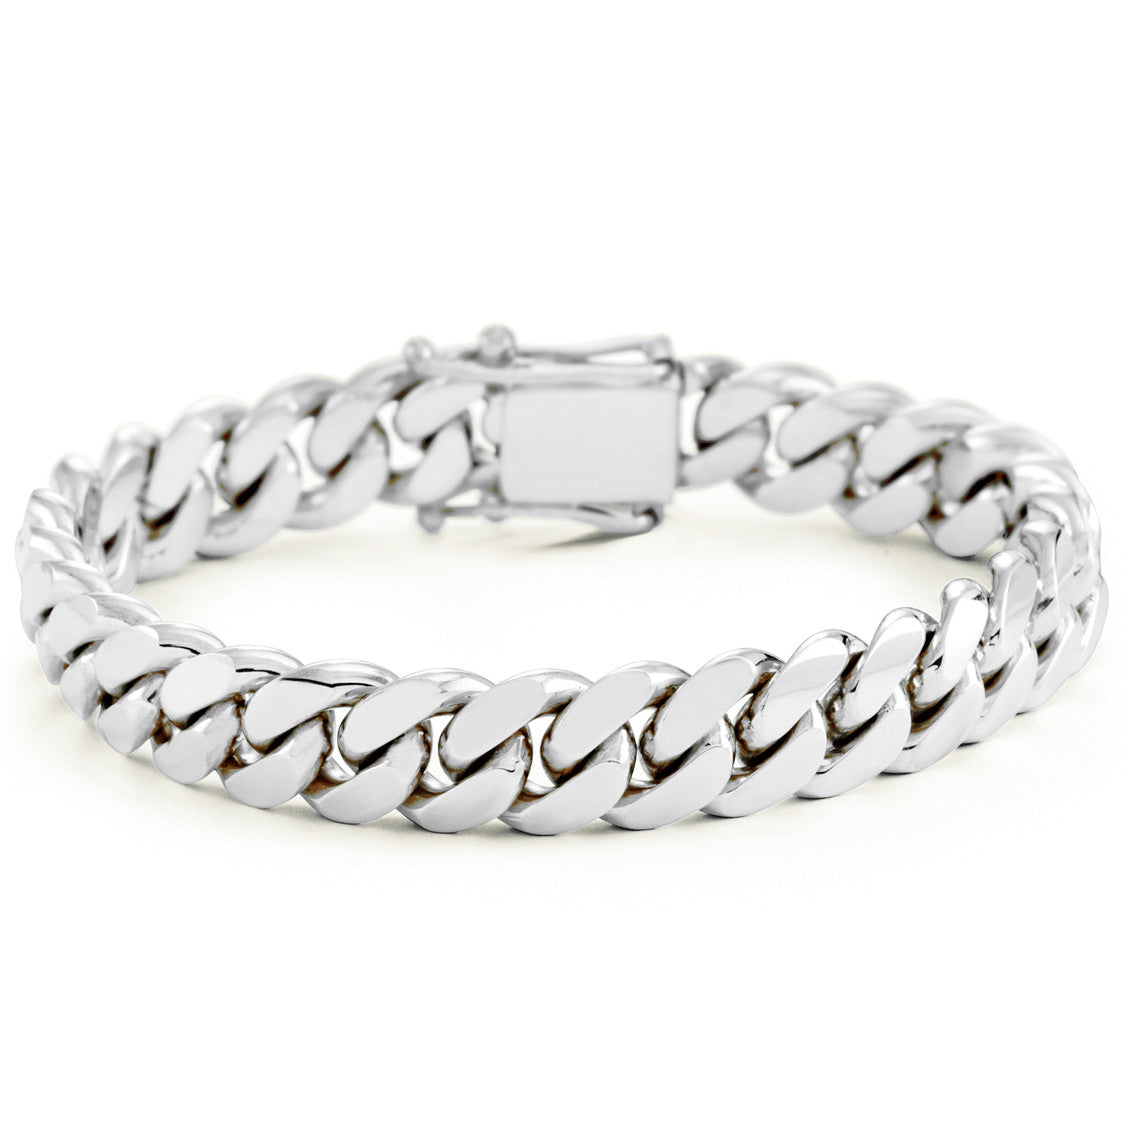 Silver Miami Cuban Link Bracelet With Box Clasp 12mm